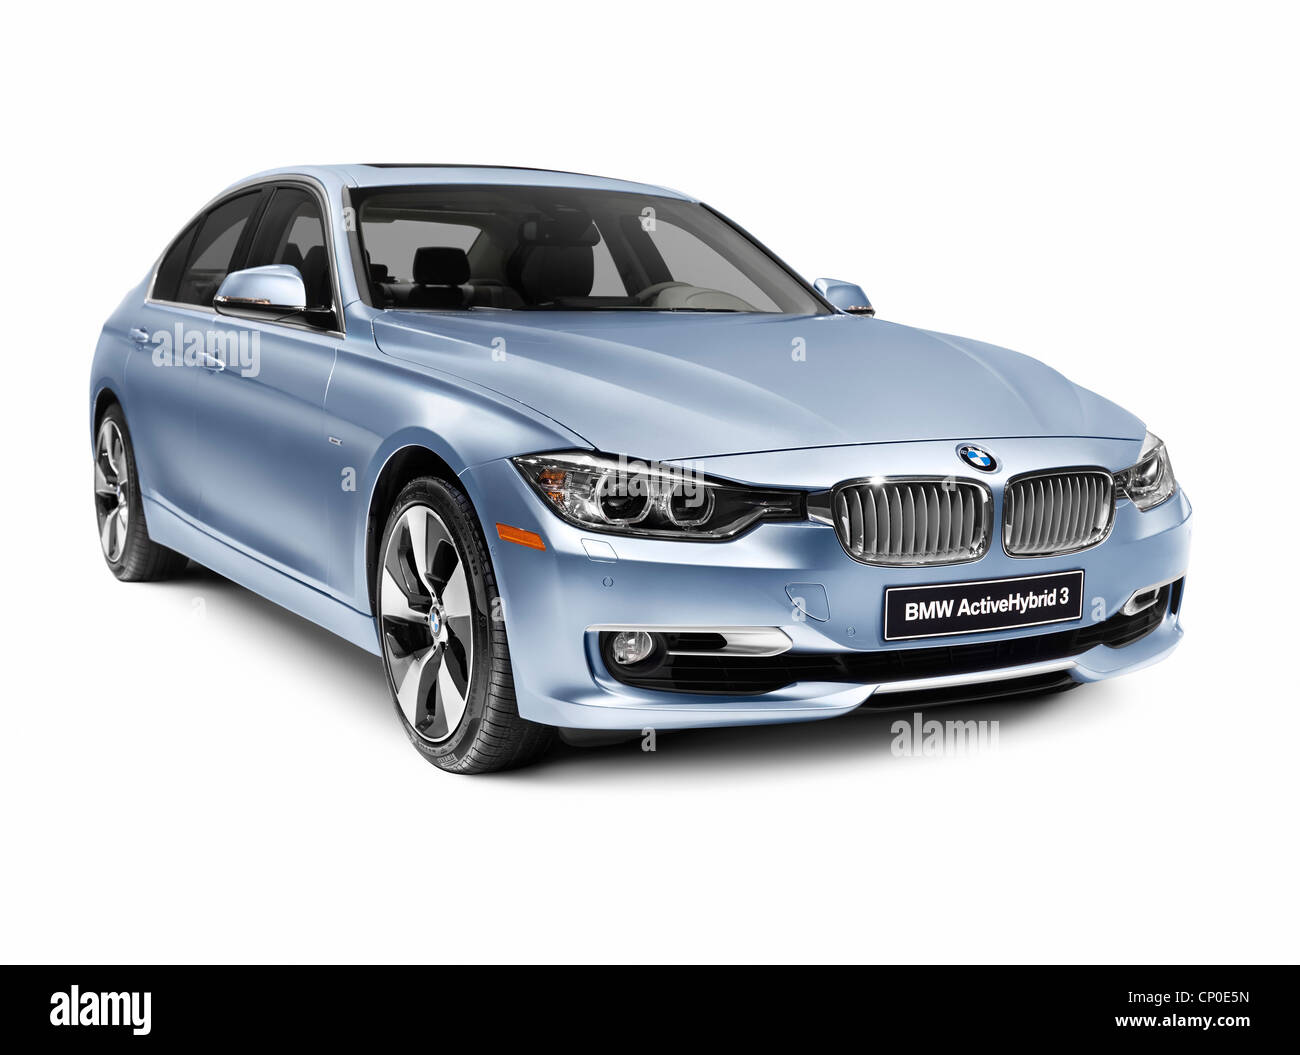 Blue 2012 BMW ActiveHybrid 3 hybrid car isolated on white background with clipping path Stock Photo